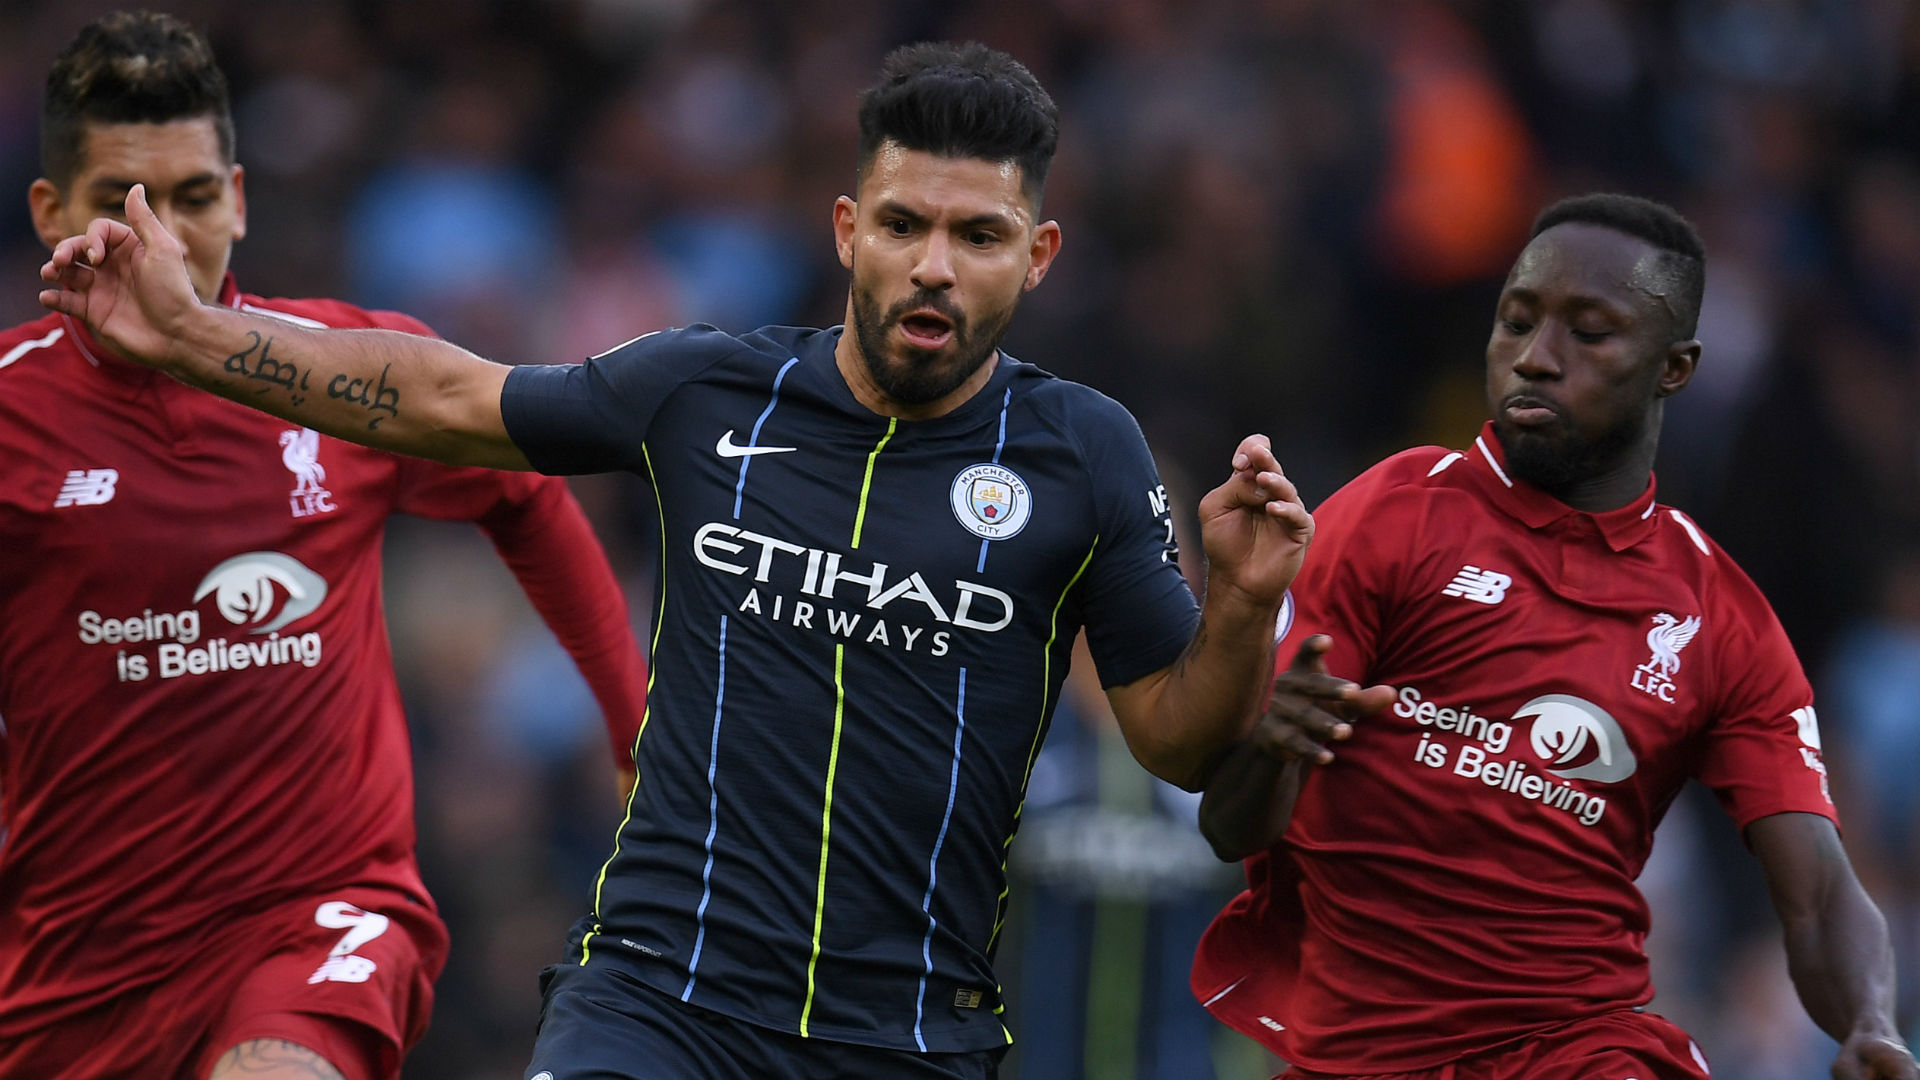 Liverpool vs. Manchester City - Football Match Report